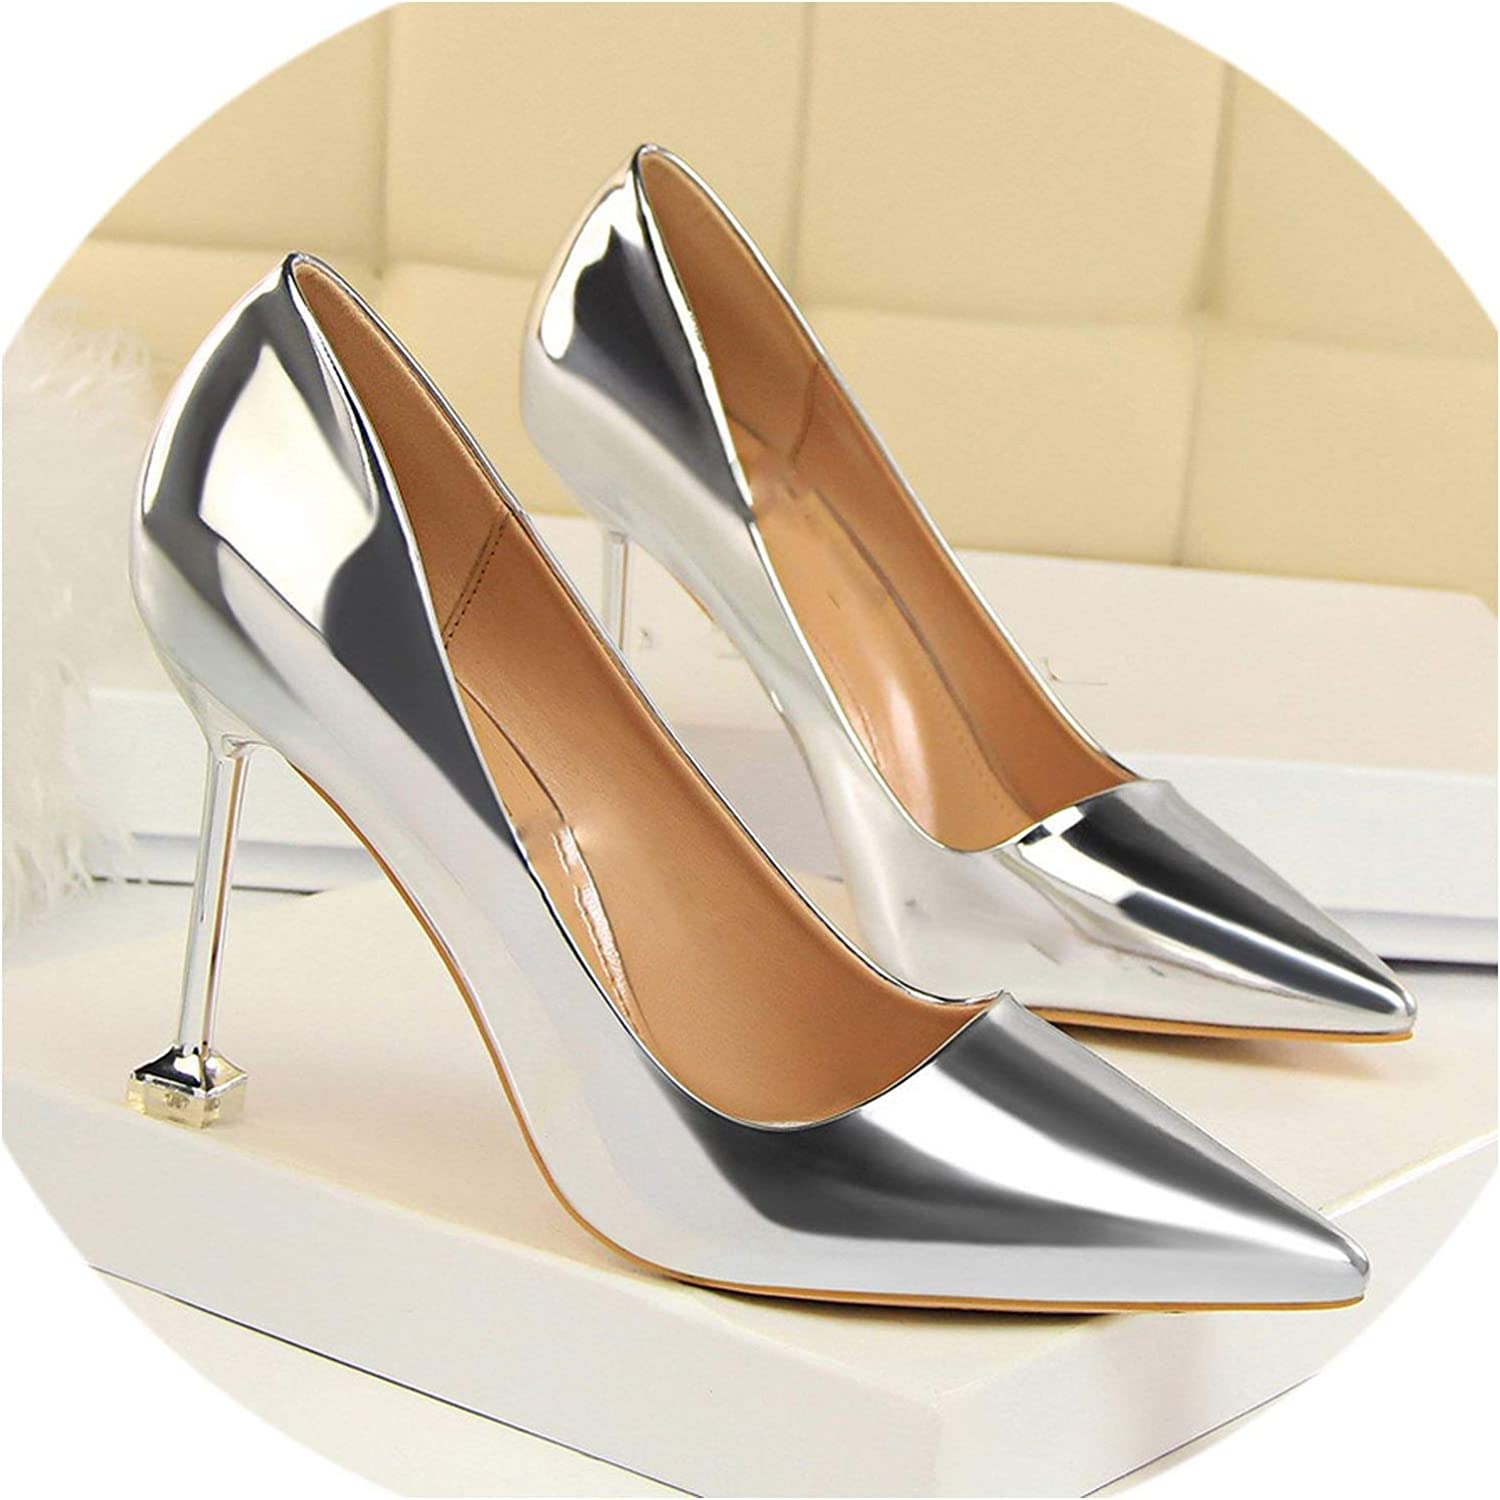 Sonder-Store Champagne Thin Heel Stiletto Woman shoes Sexy Point Toe High Heels